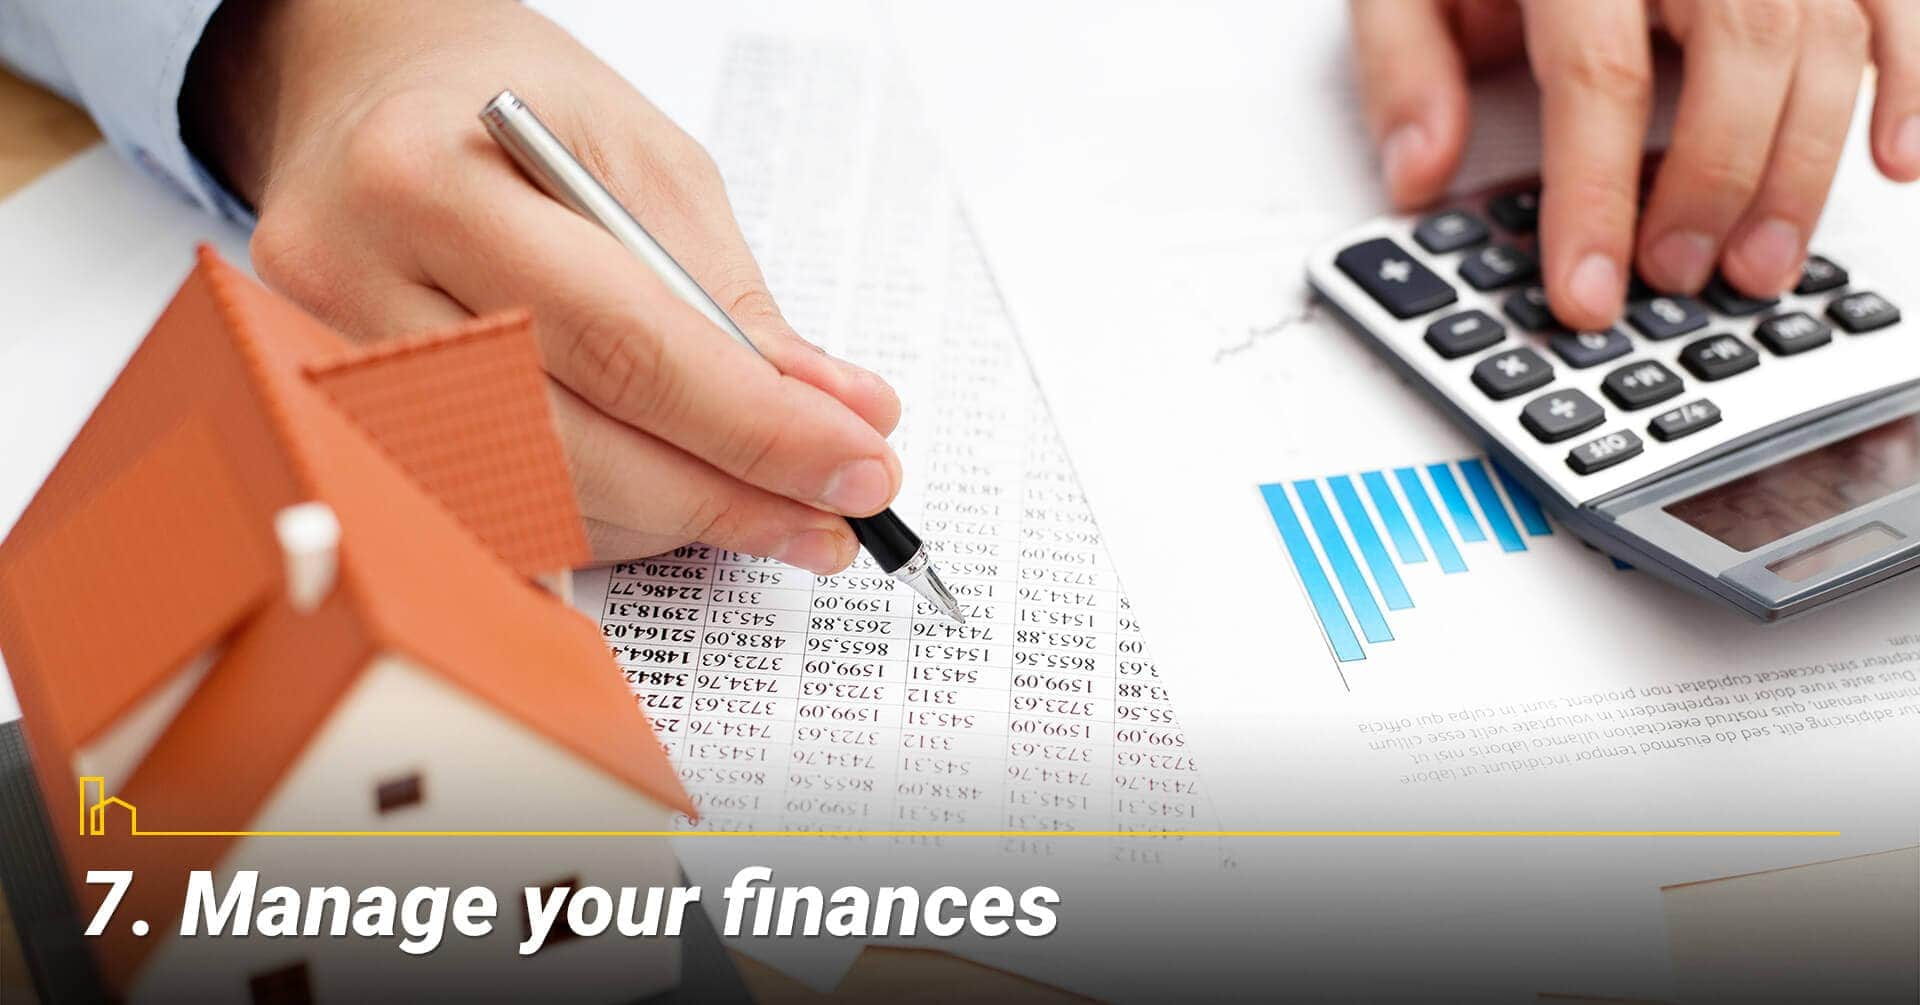 Manage your finances, keep track of your money